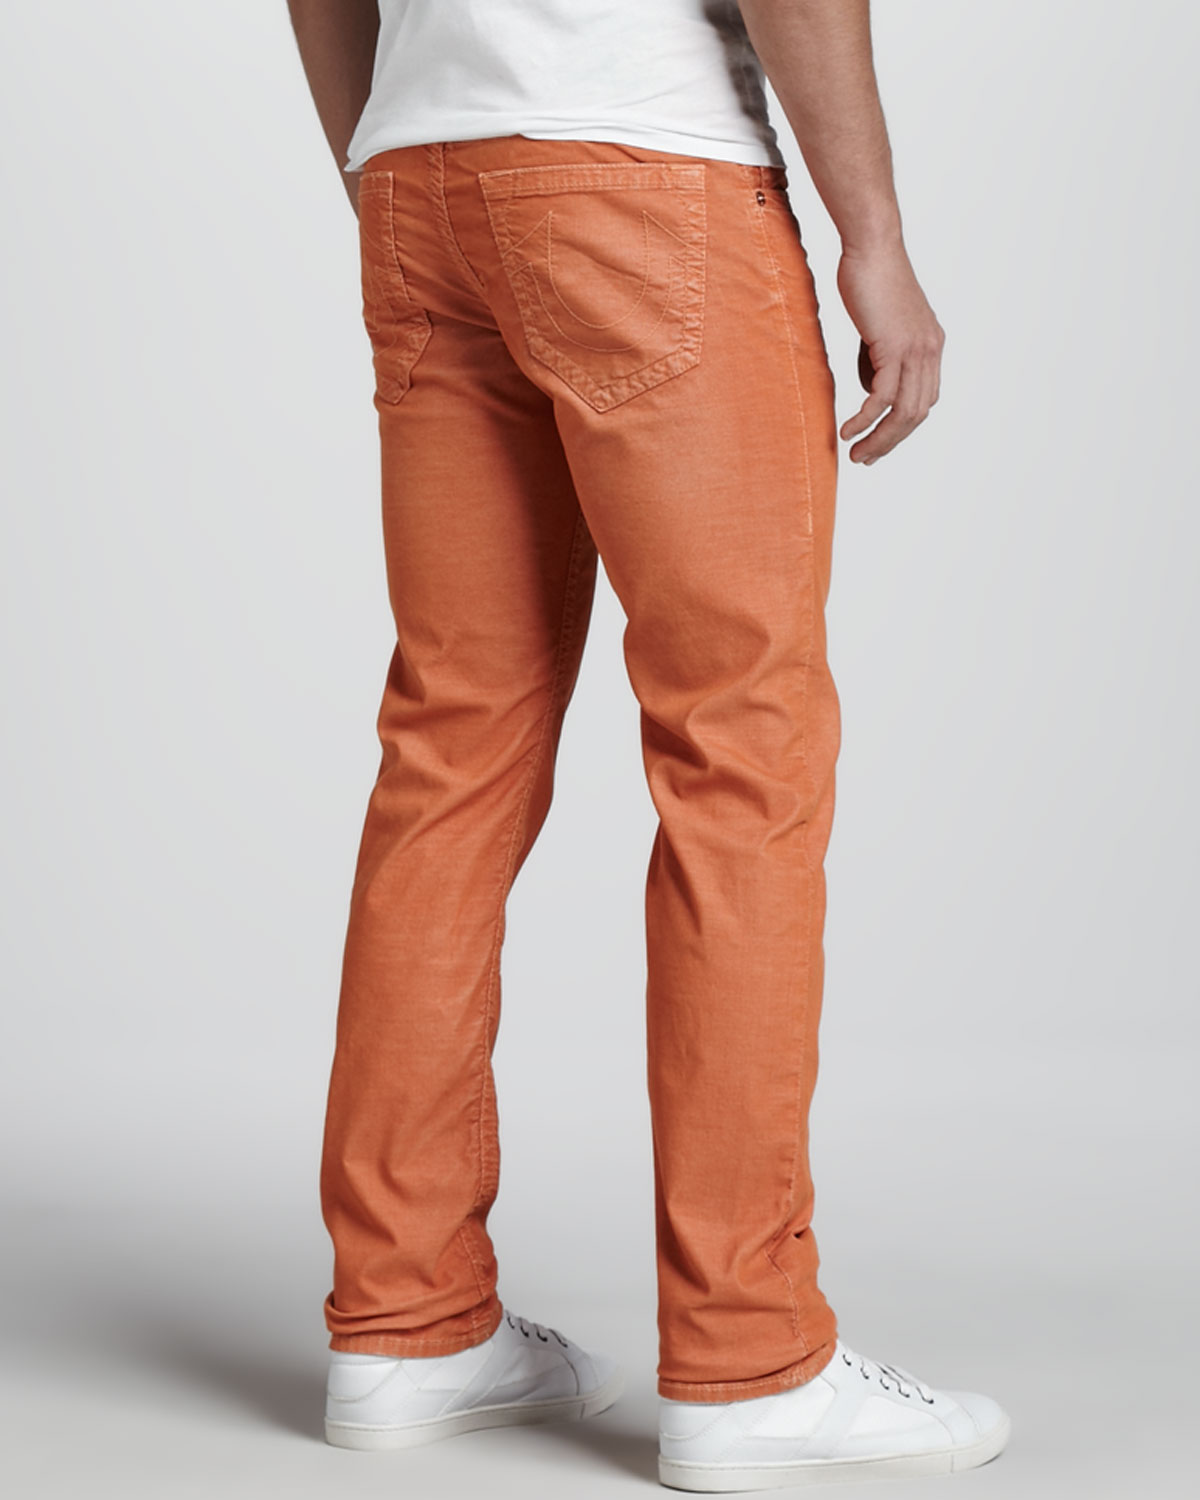 Free shipping and returns on Men's Corduroy Pants at dvlnpxiuf.ga